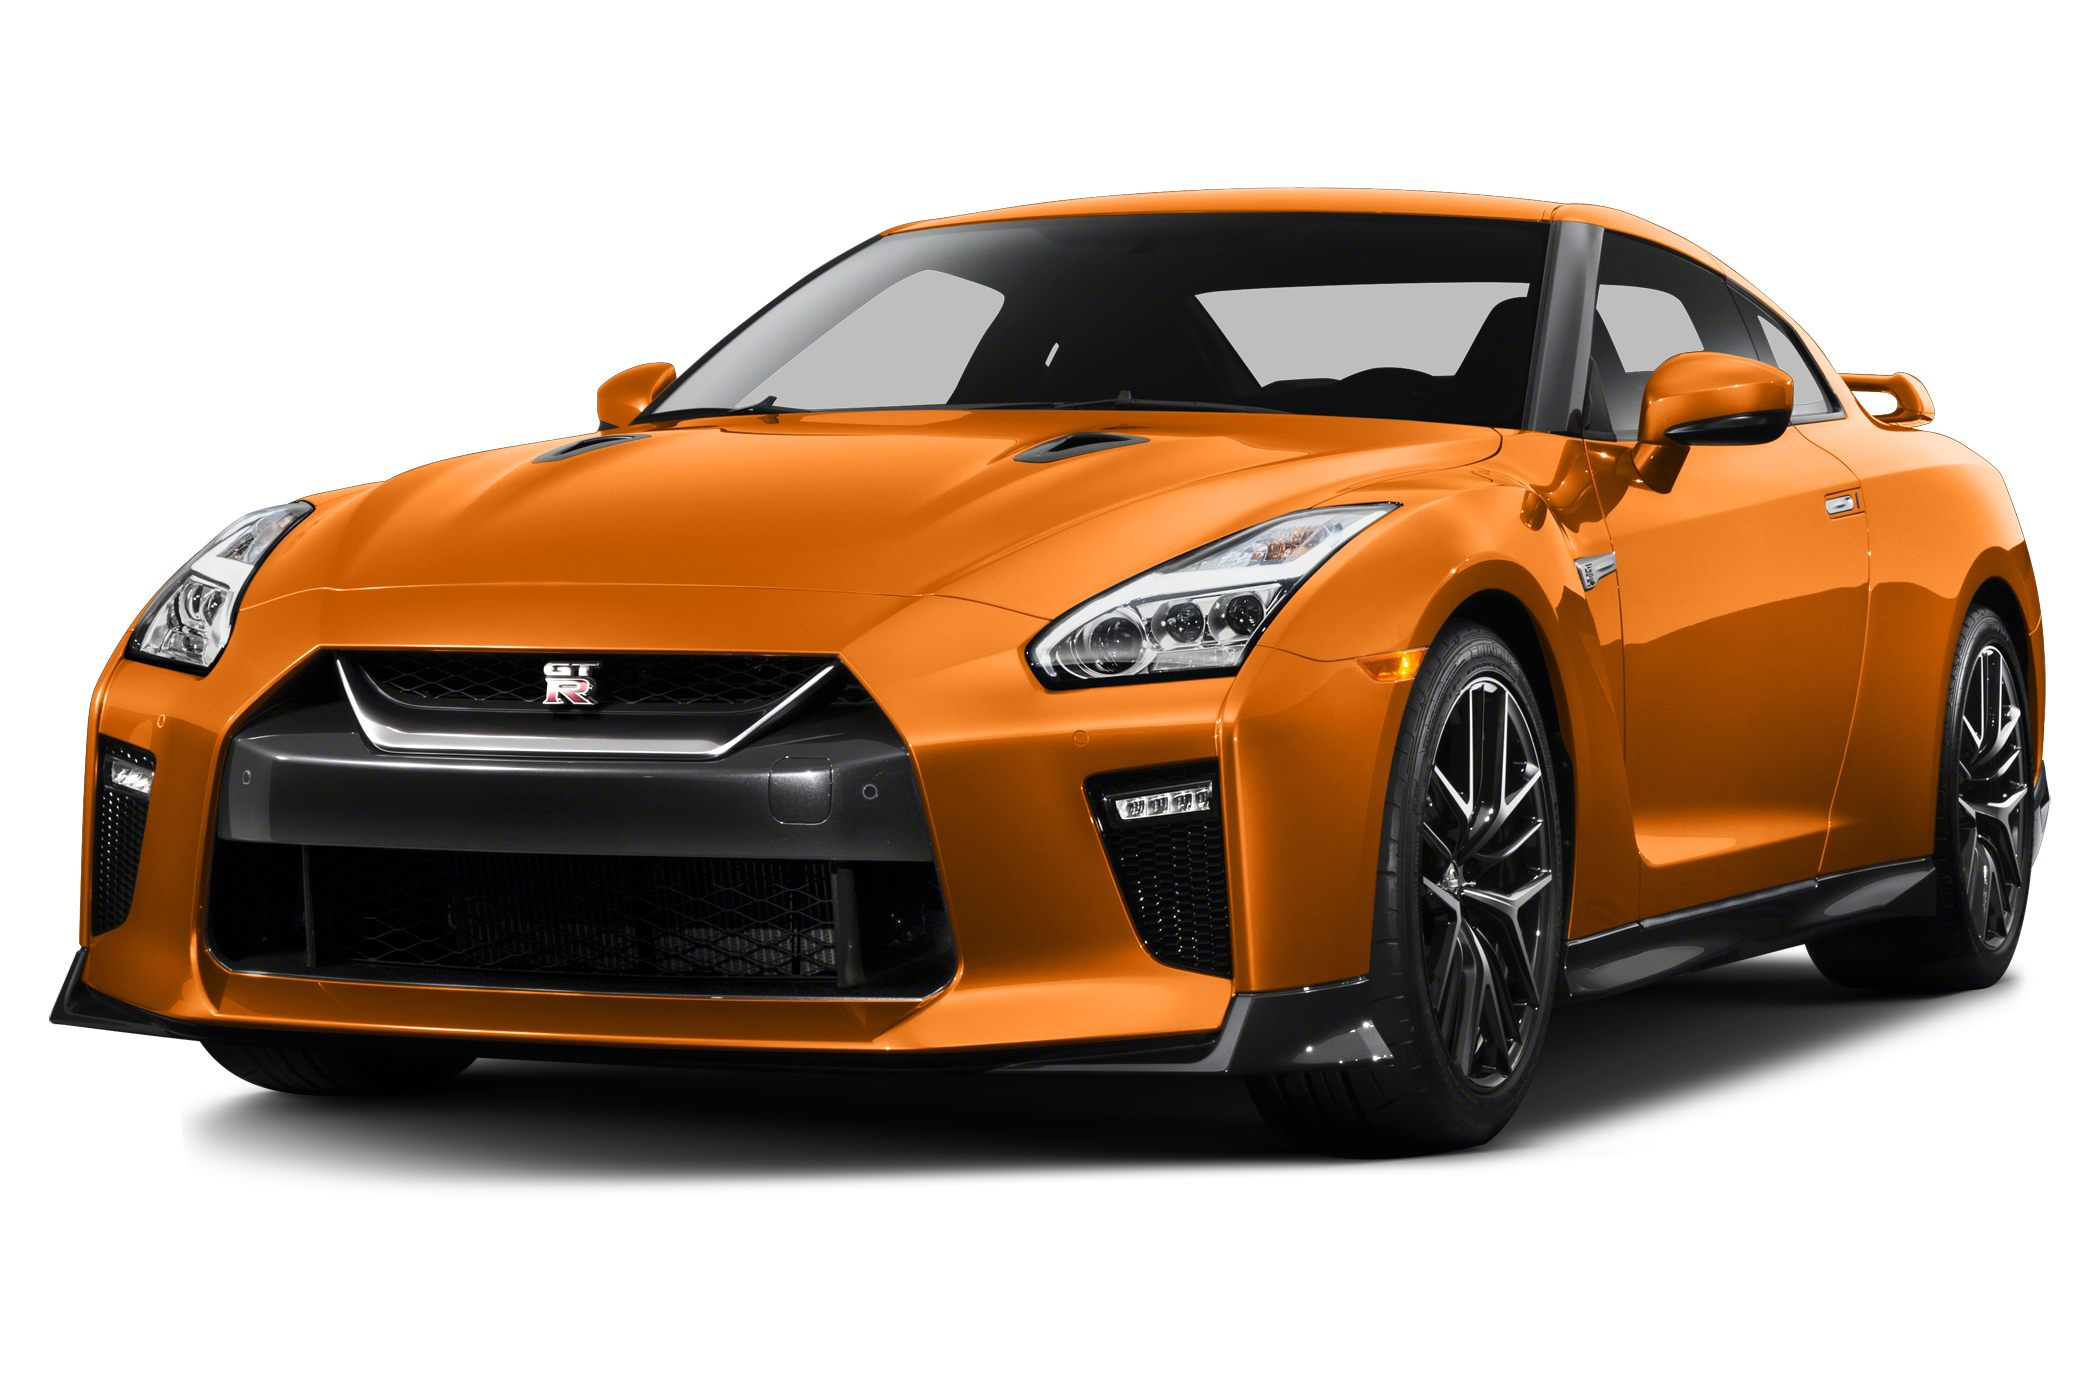 2017 nissan gt r 39 s 111 585 price is 8k more than before autoblog. Black Bedroom Furniture Sets. Home Design Ideas